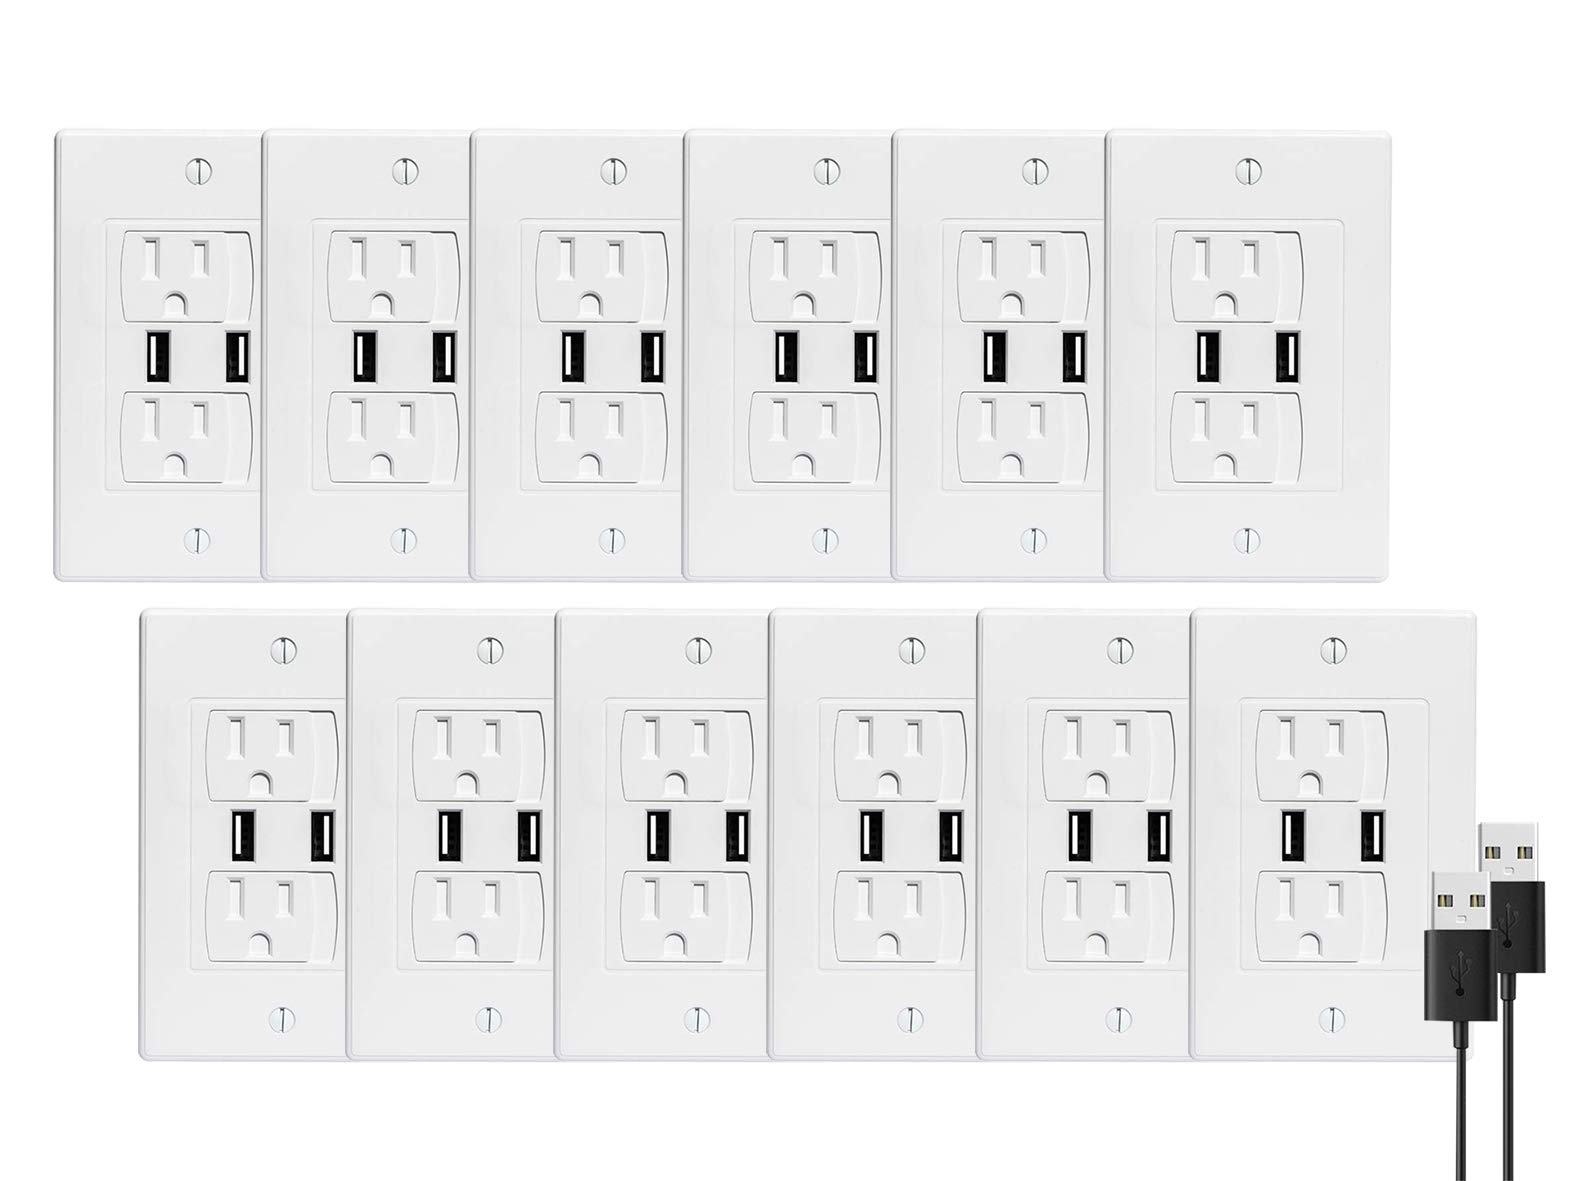 BUENAVO Universal Electrical Outlet Covers with USB Port, Baby Safety Self-Closing Wall Socket Plugs Plate Alternate for Child Proofing, BPA Free (12 Pack)